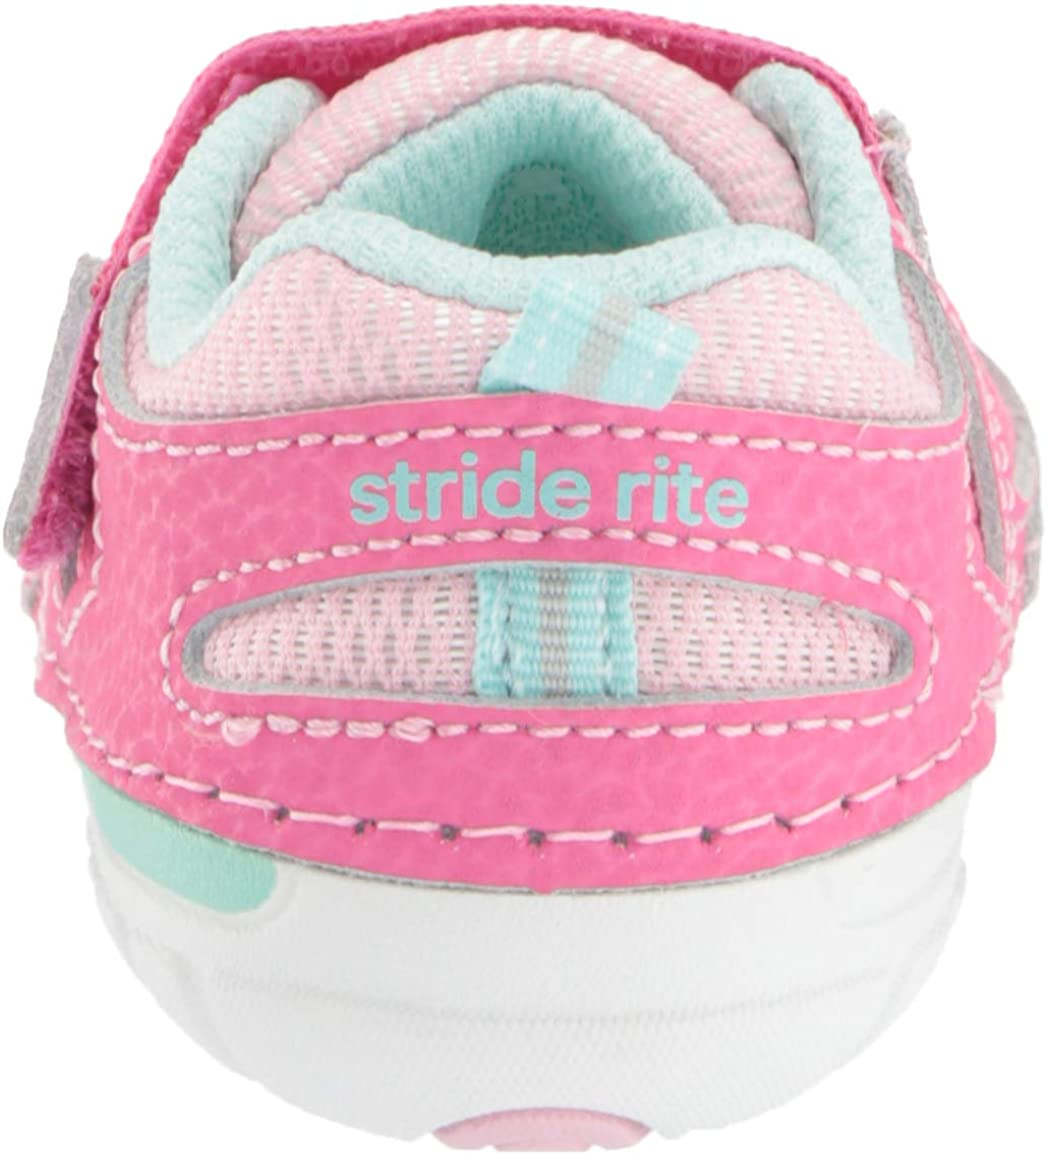 | Stride Rite Soft Motion Baby and Toddler Boys Adrian Athletic Sneaker | Sneakers